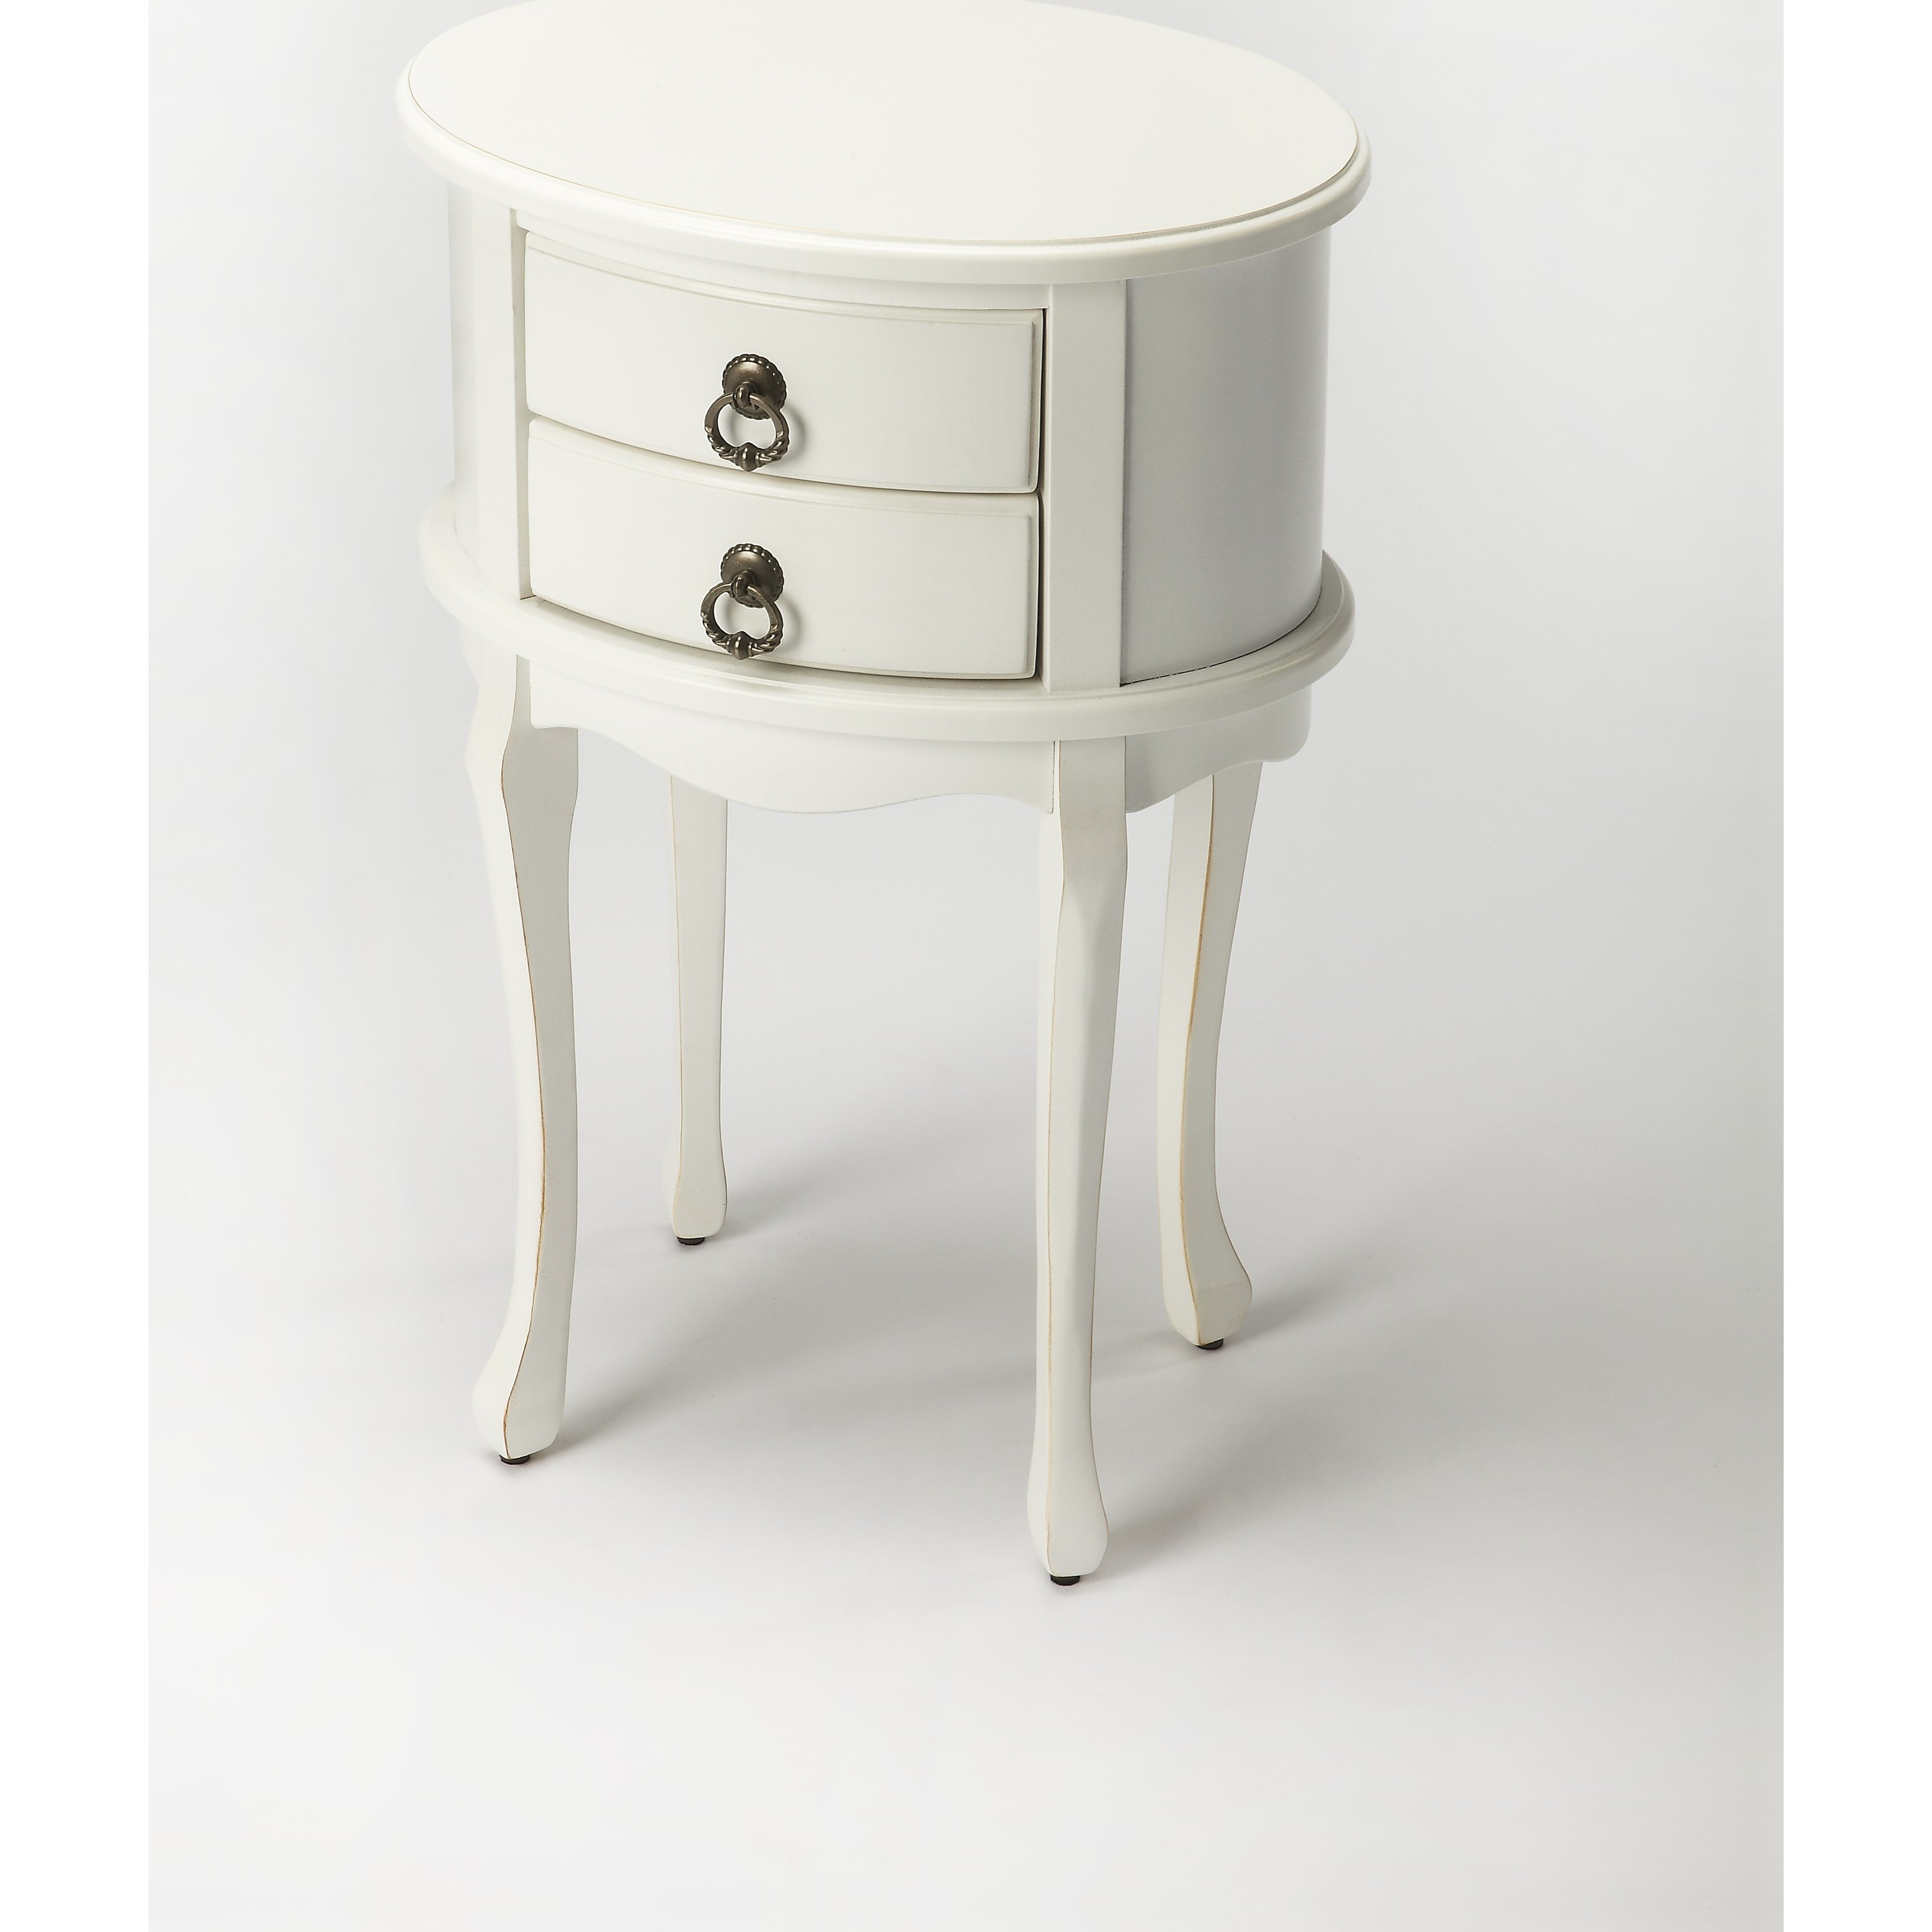 Butler Specialty Company Masterpiece Oval Side Table - Item Number: 1589222